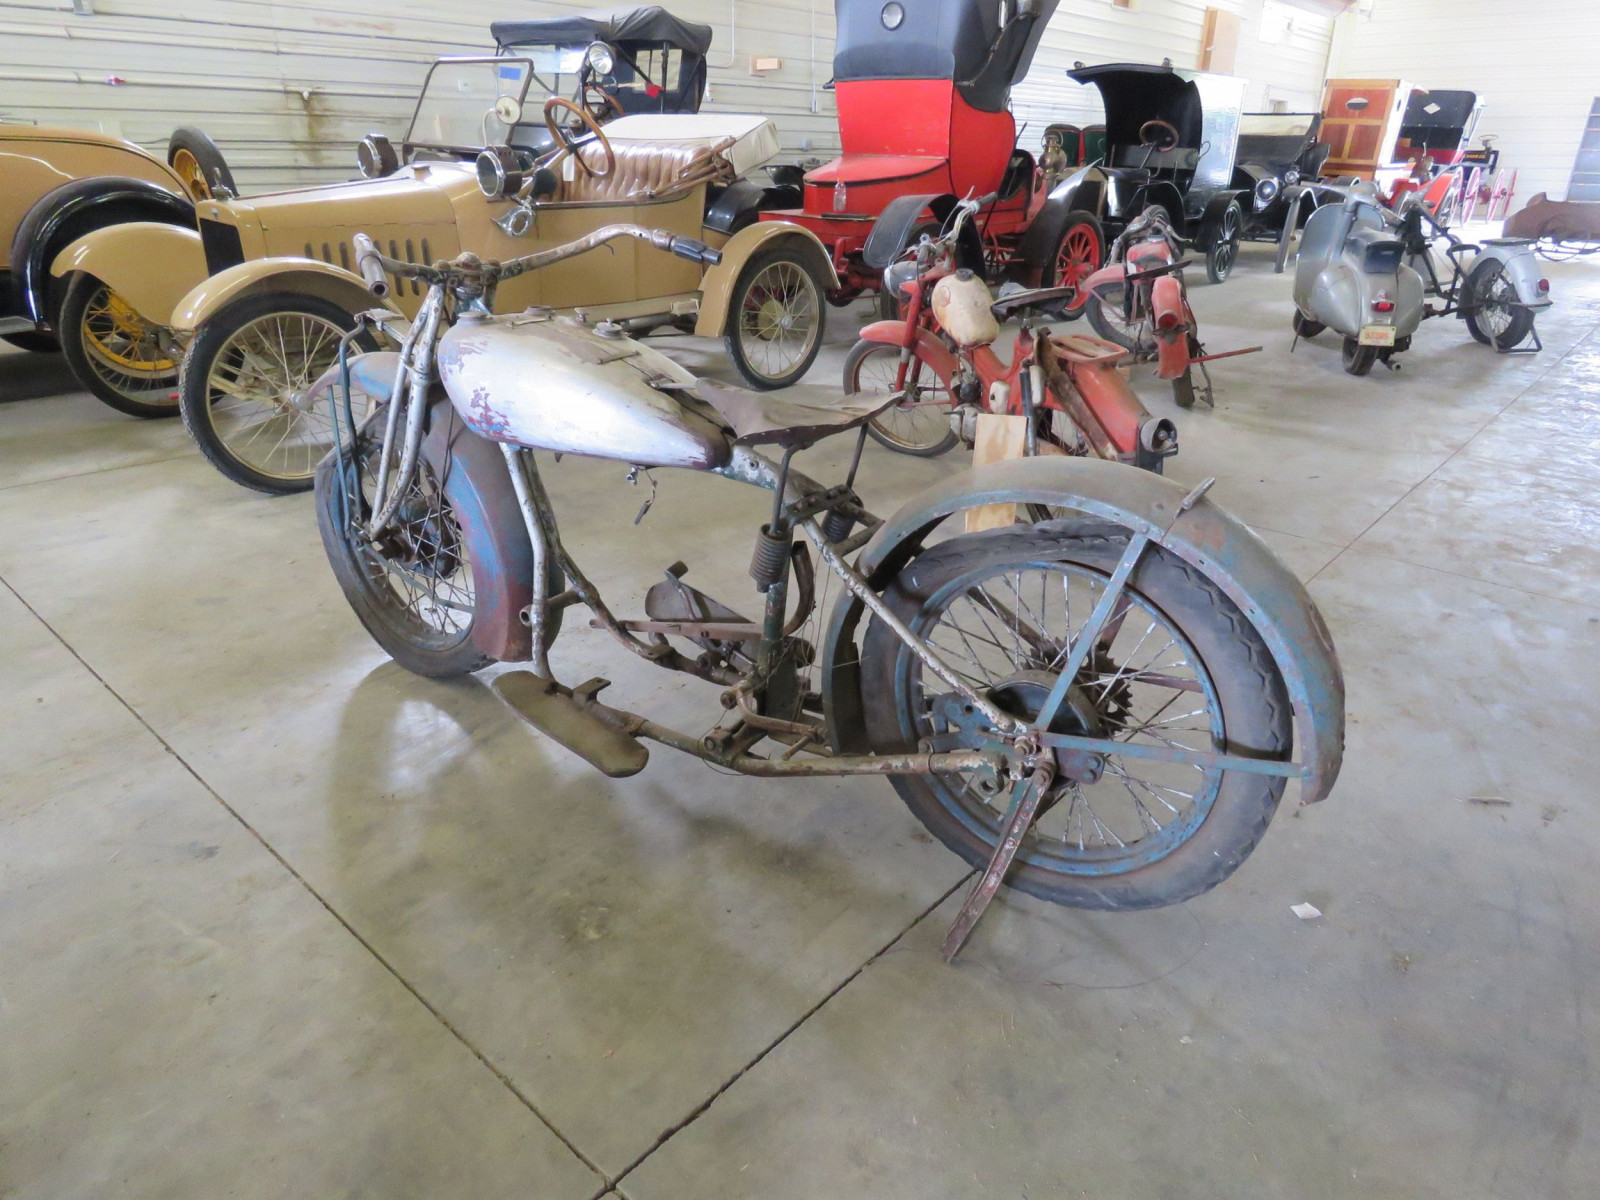 RARE 1929 Indian V-Twin Motorcycle - Image 14